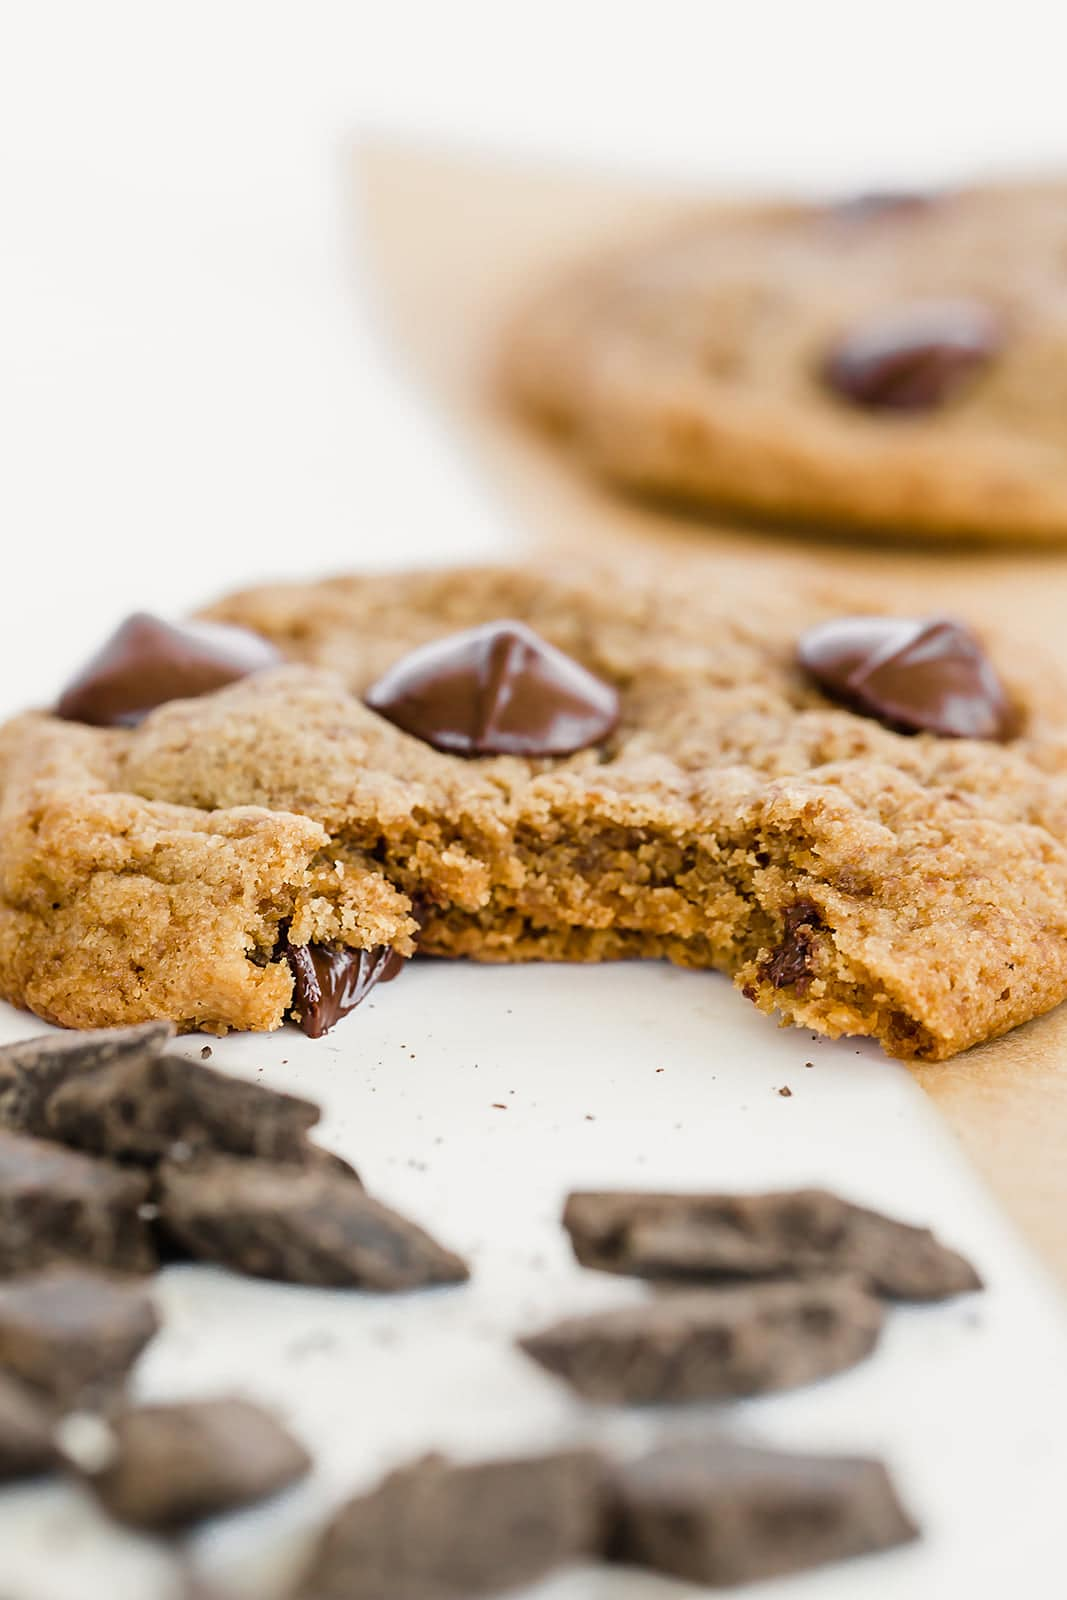 Dairy free chocolate chip cookies made without granulated sugar!